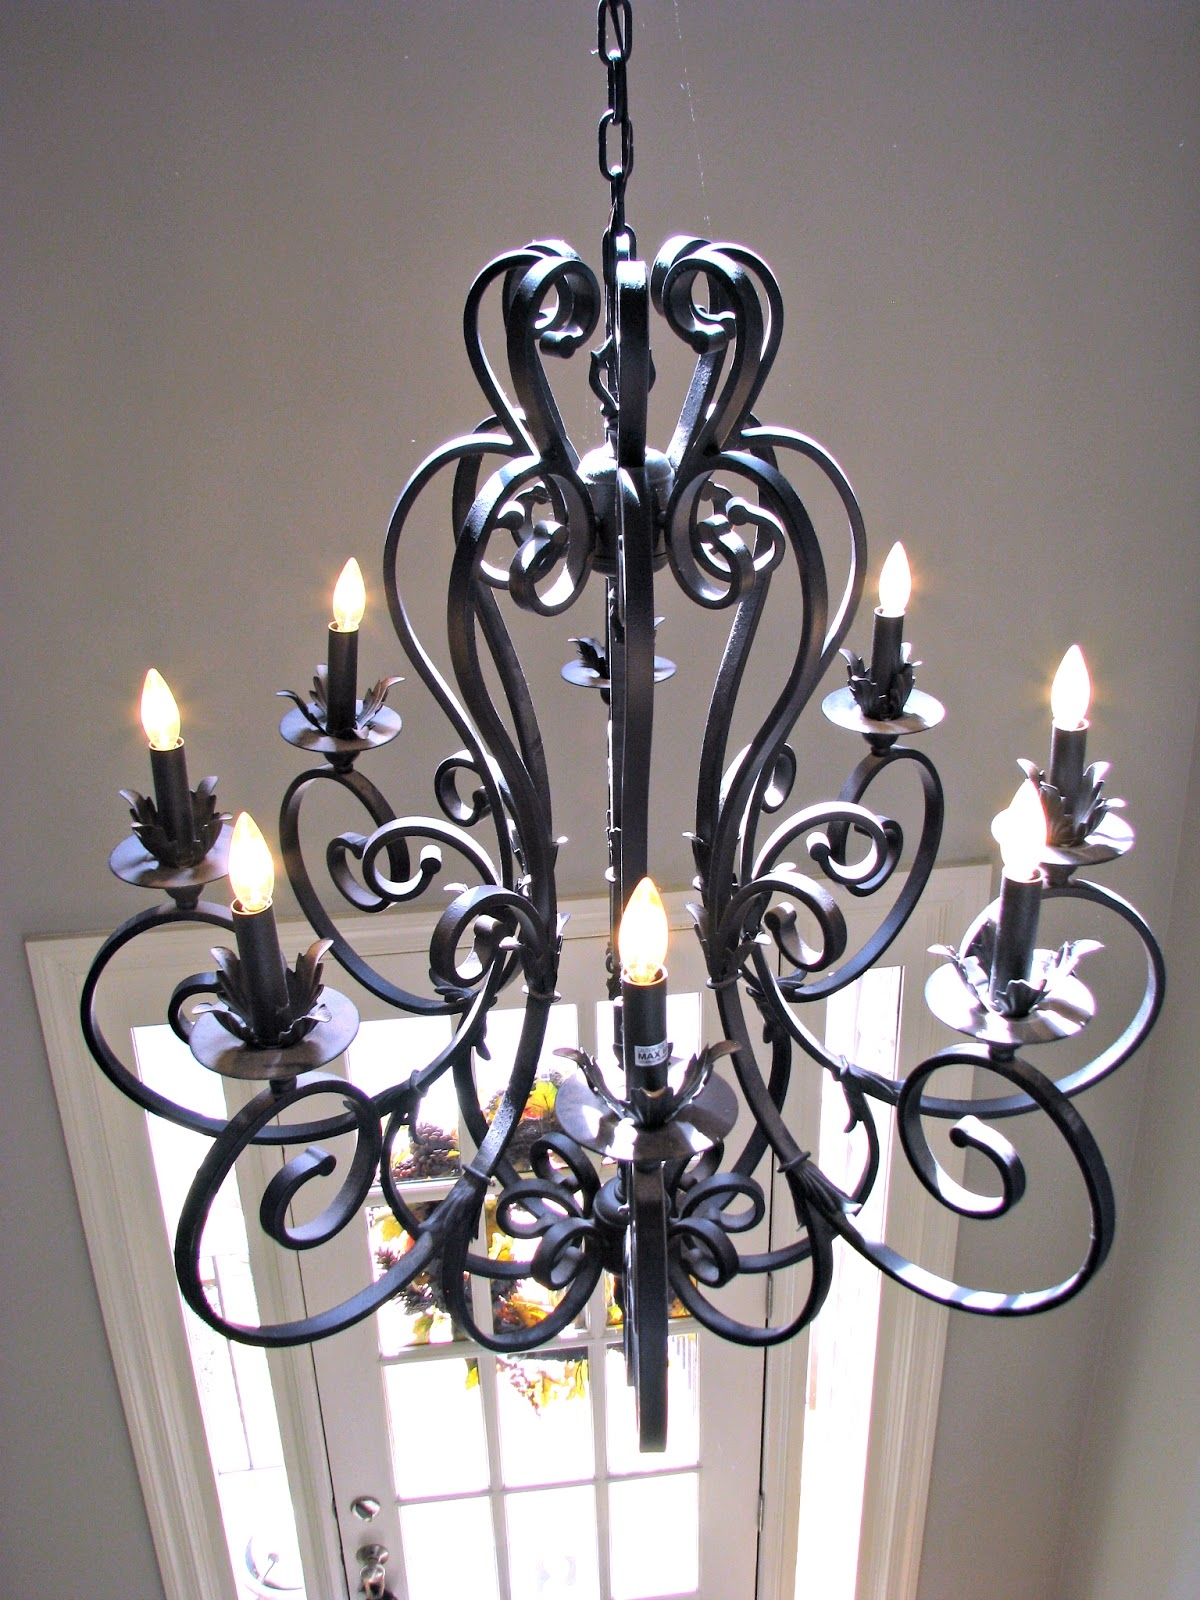 Iron Chandelier With Shades Roselawnlutheran In Large Iron Chandeliers (Image 9 of 15)